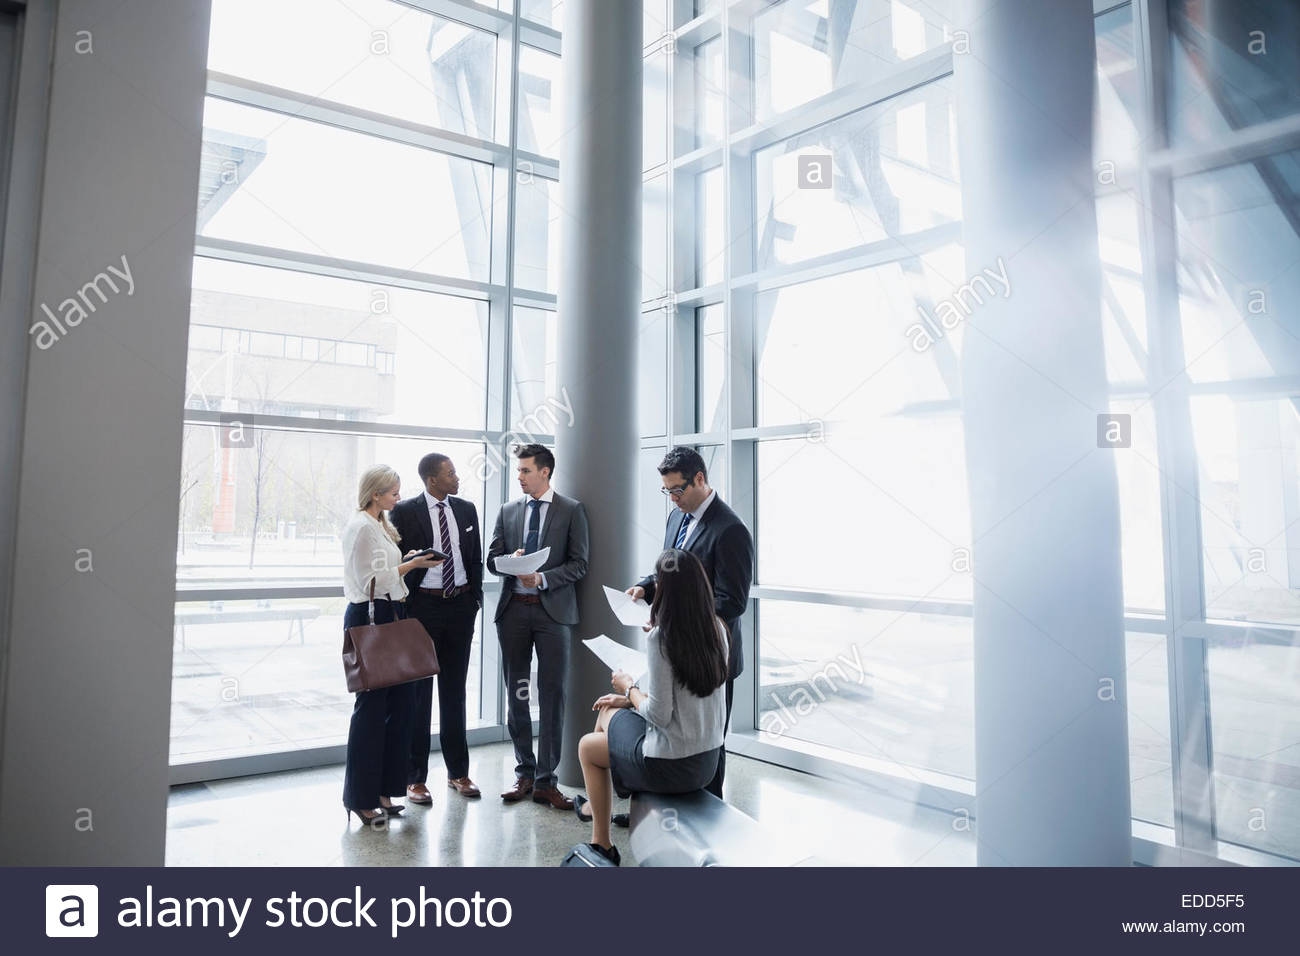 Business people discussing paperwork - Stock Image